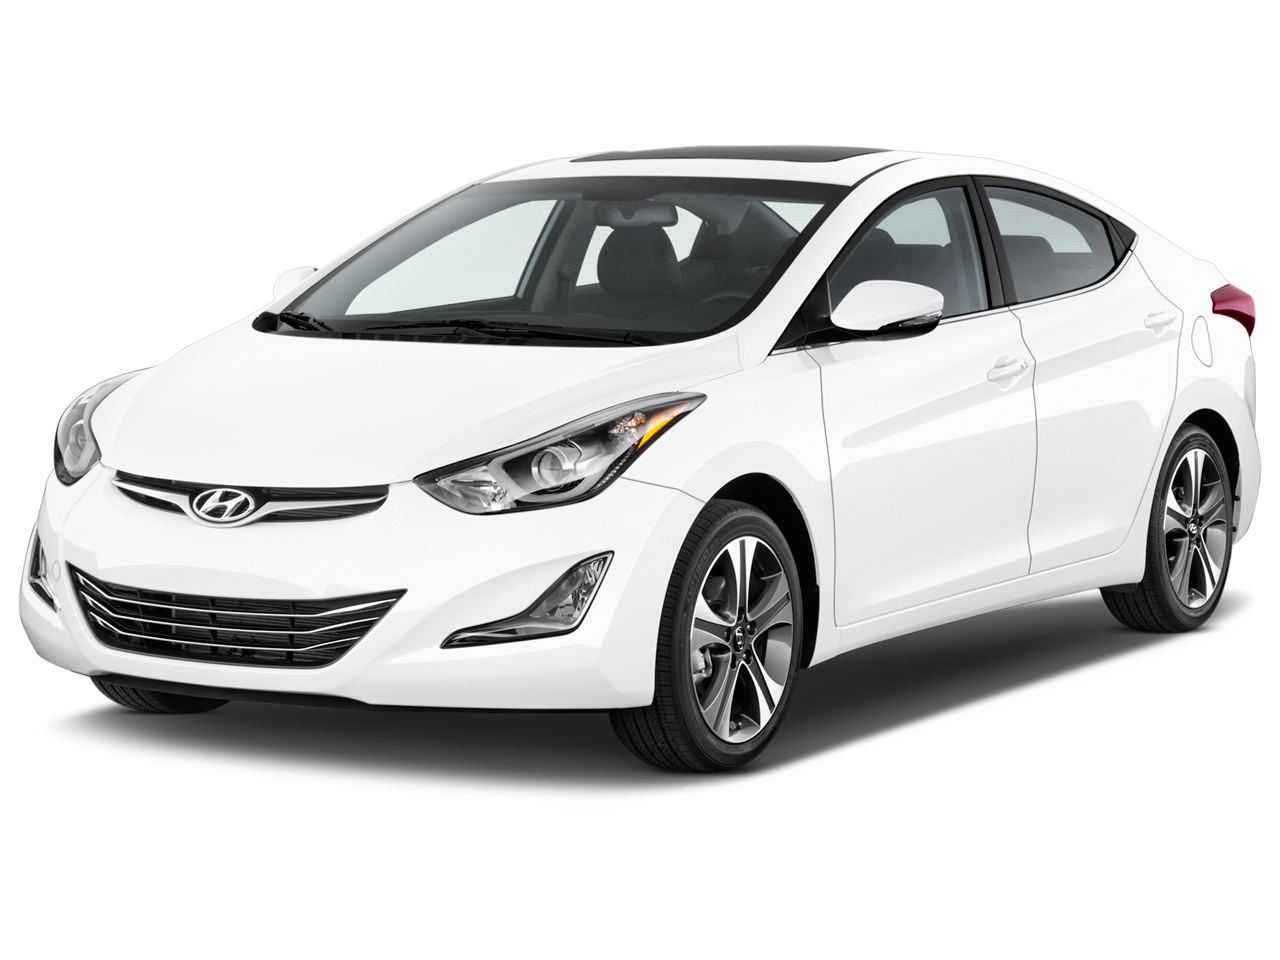 2018 Hyundai Accent Spec >> Search Results Carwale Compare Cars.html - Autos Weblog